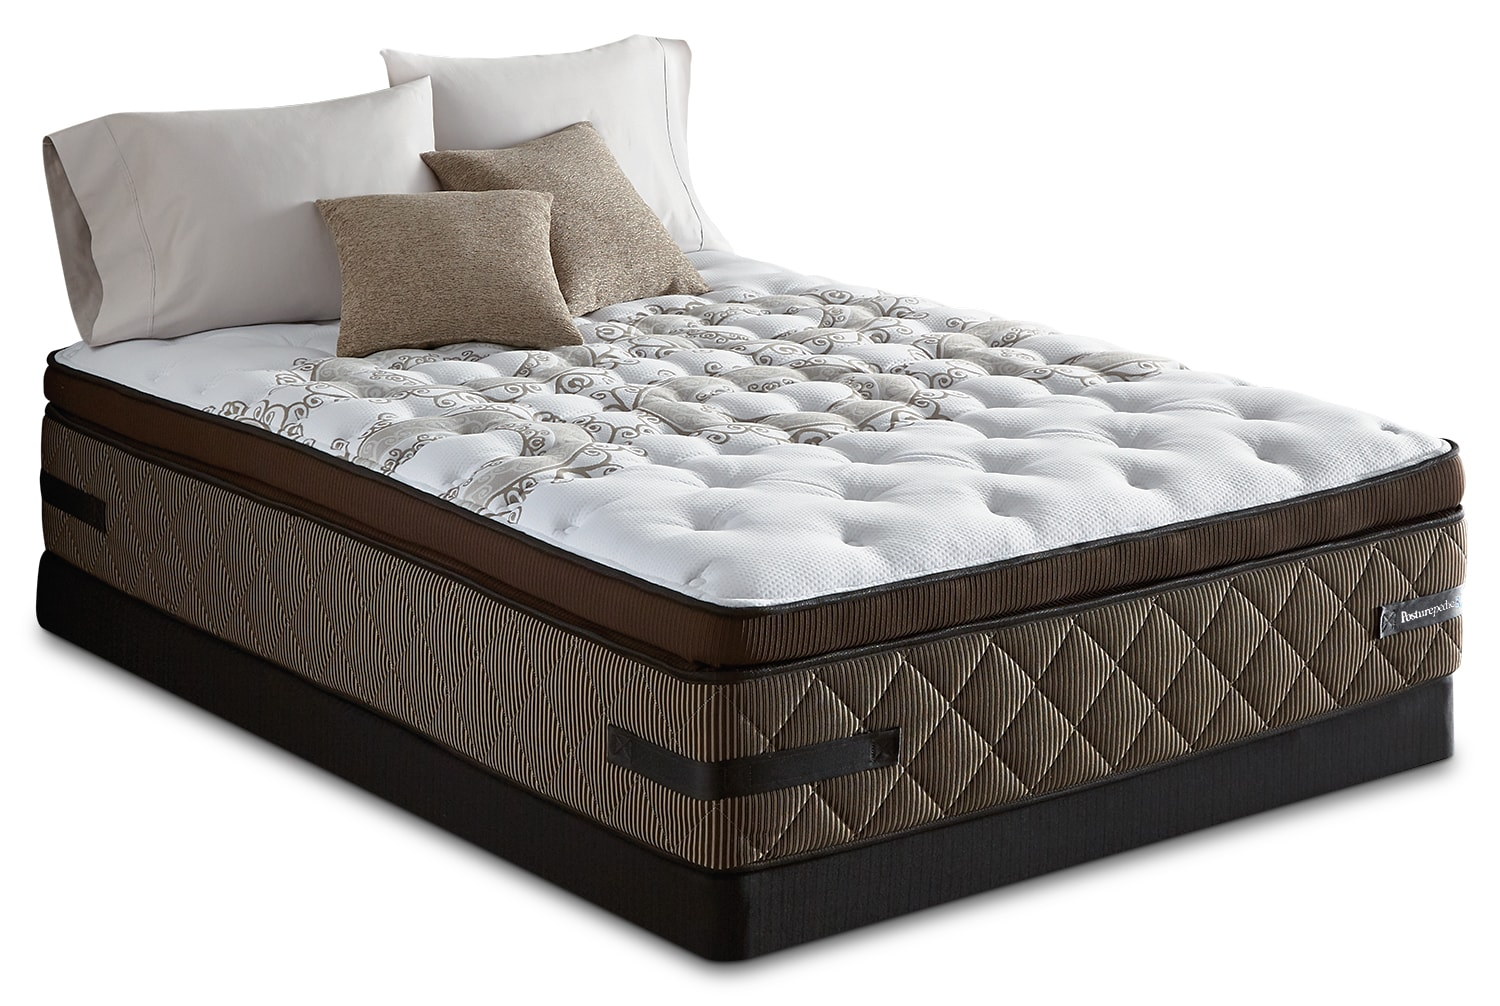 Mattresses and Bedding - Sealy Crown Jewel Sunsera Euro Pillow-Top Plush Queen Mattress Set